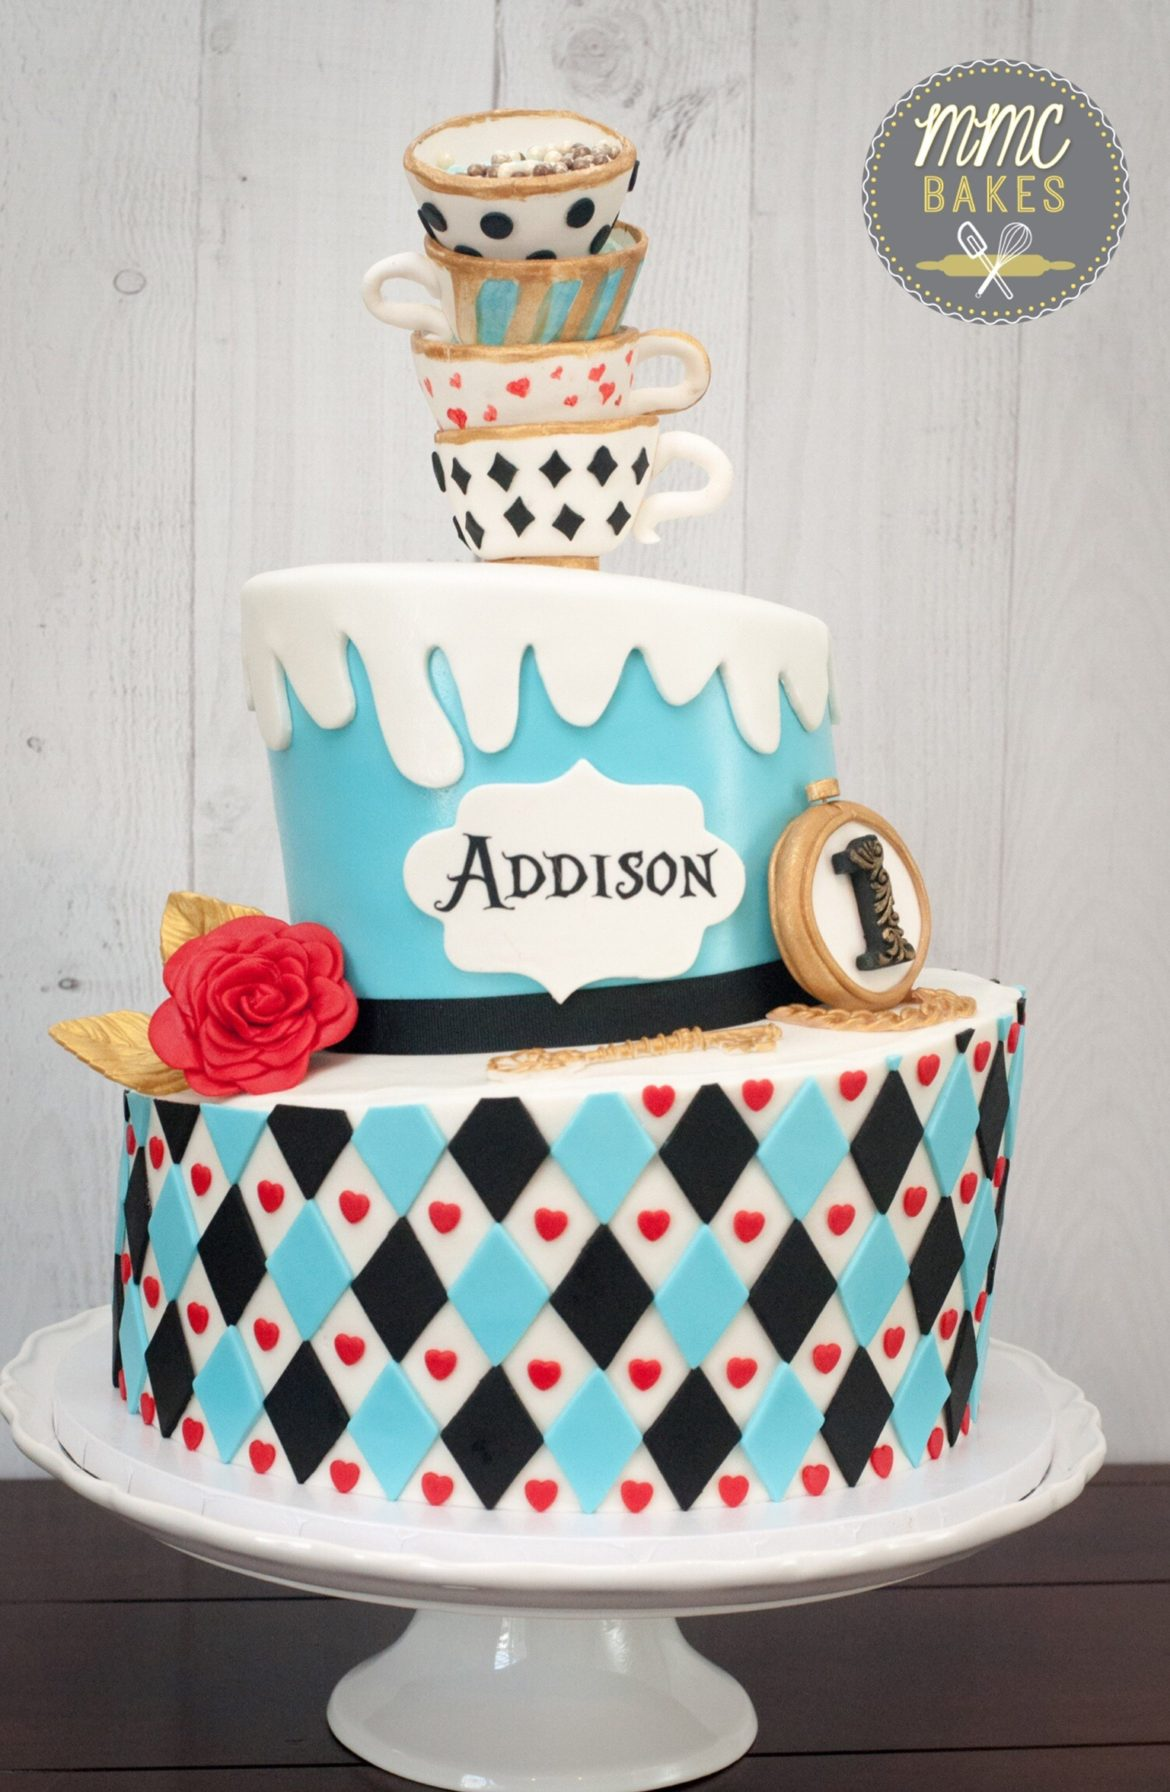 Astonishing Alice In Wonderland Cake Mmc Bakes Personalised Birthday Cards Cominlily Jamesorg